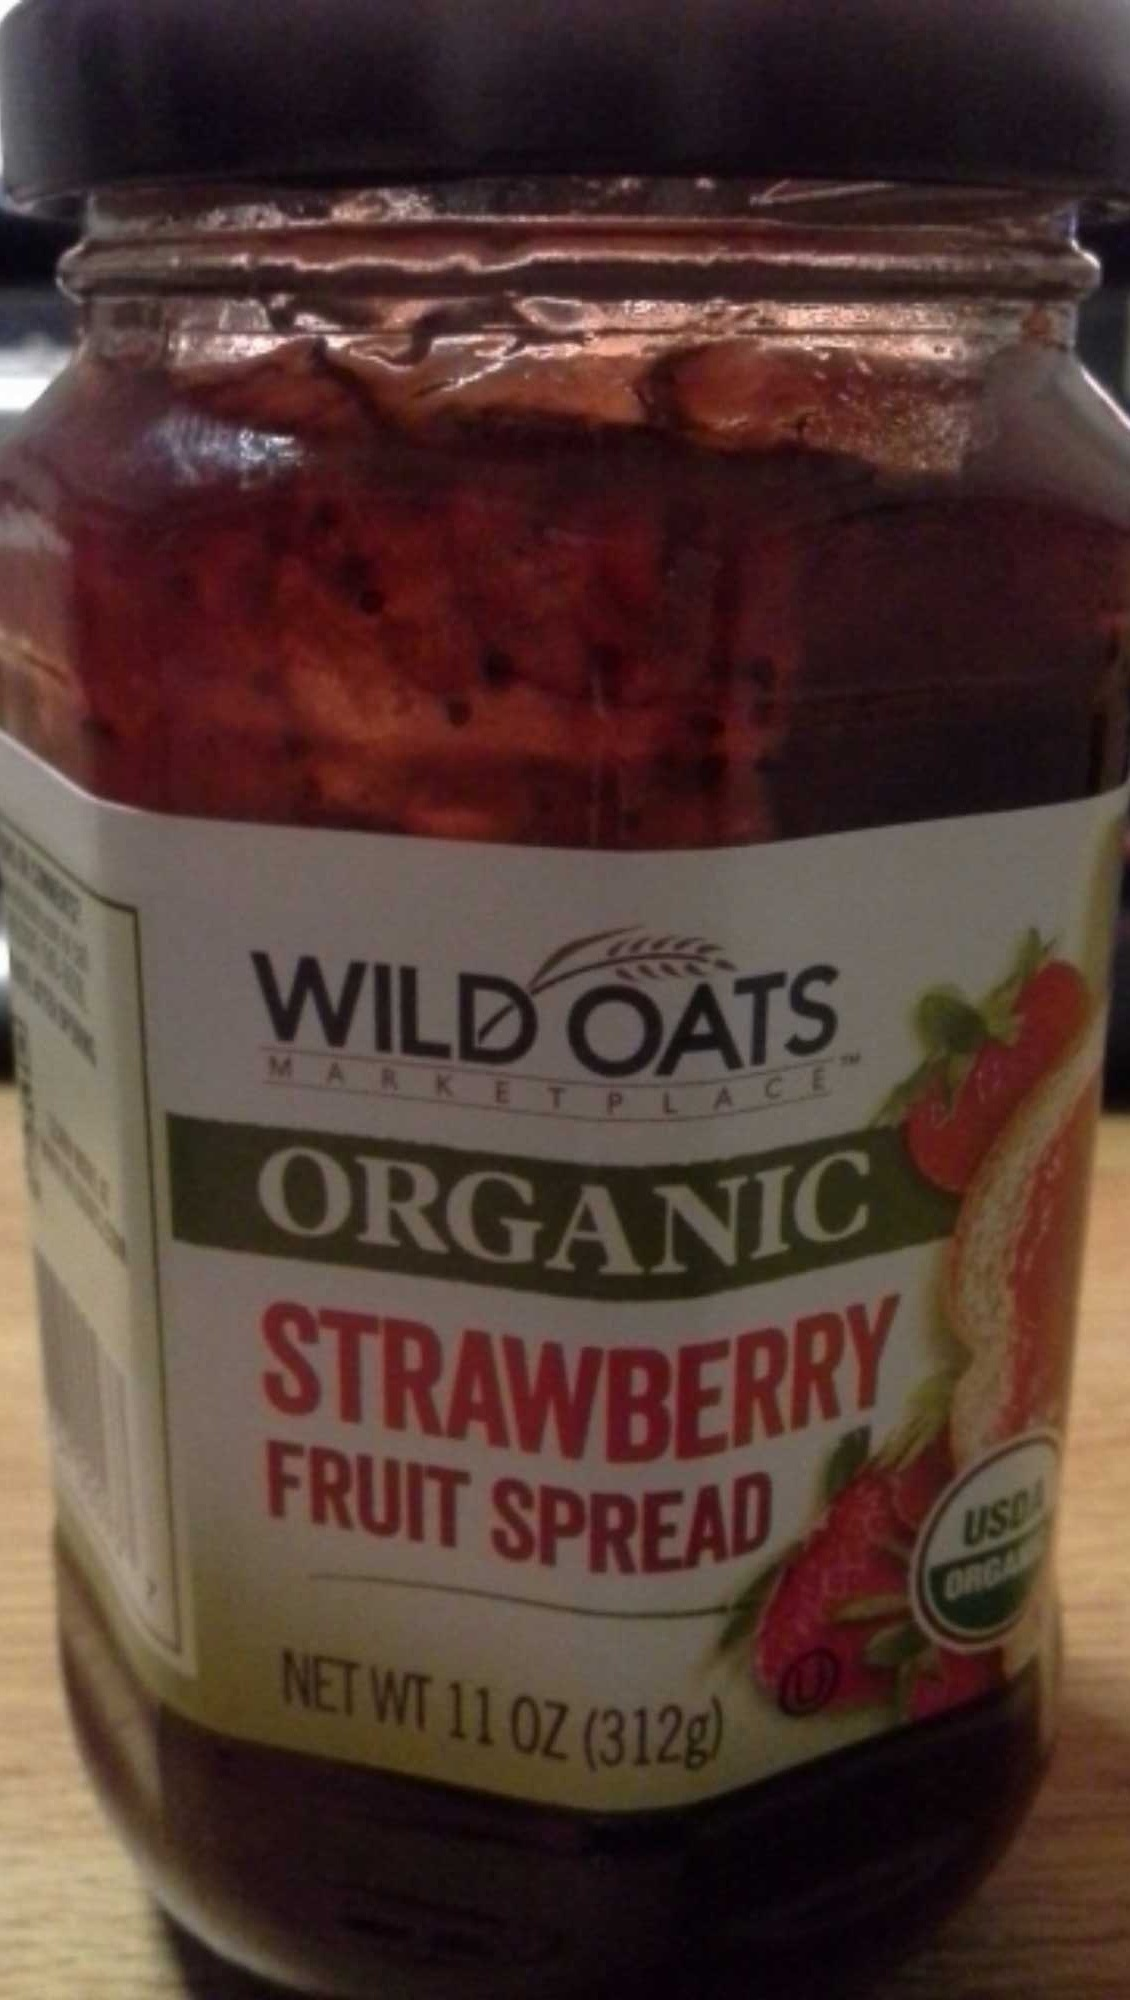 Wild Oats Organic Strawberry Fruit Spread - Product